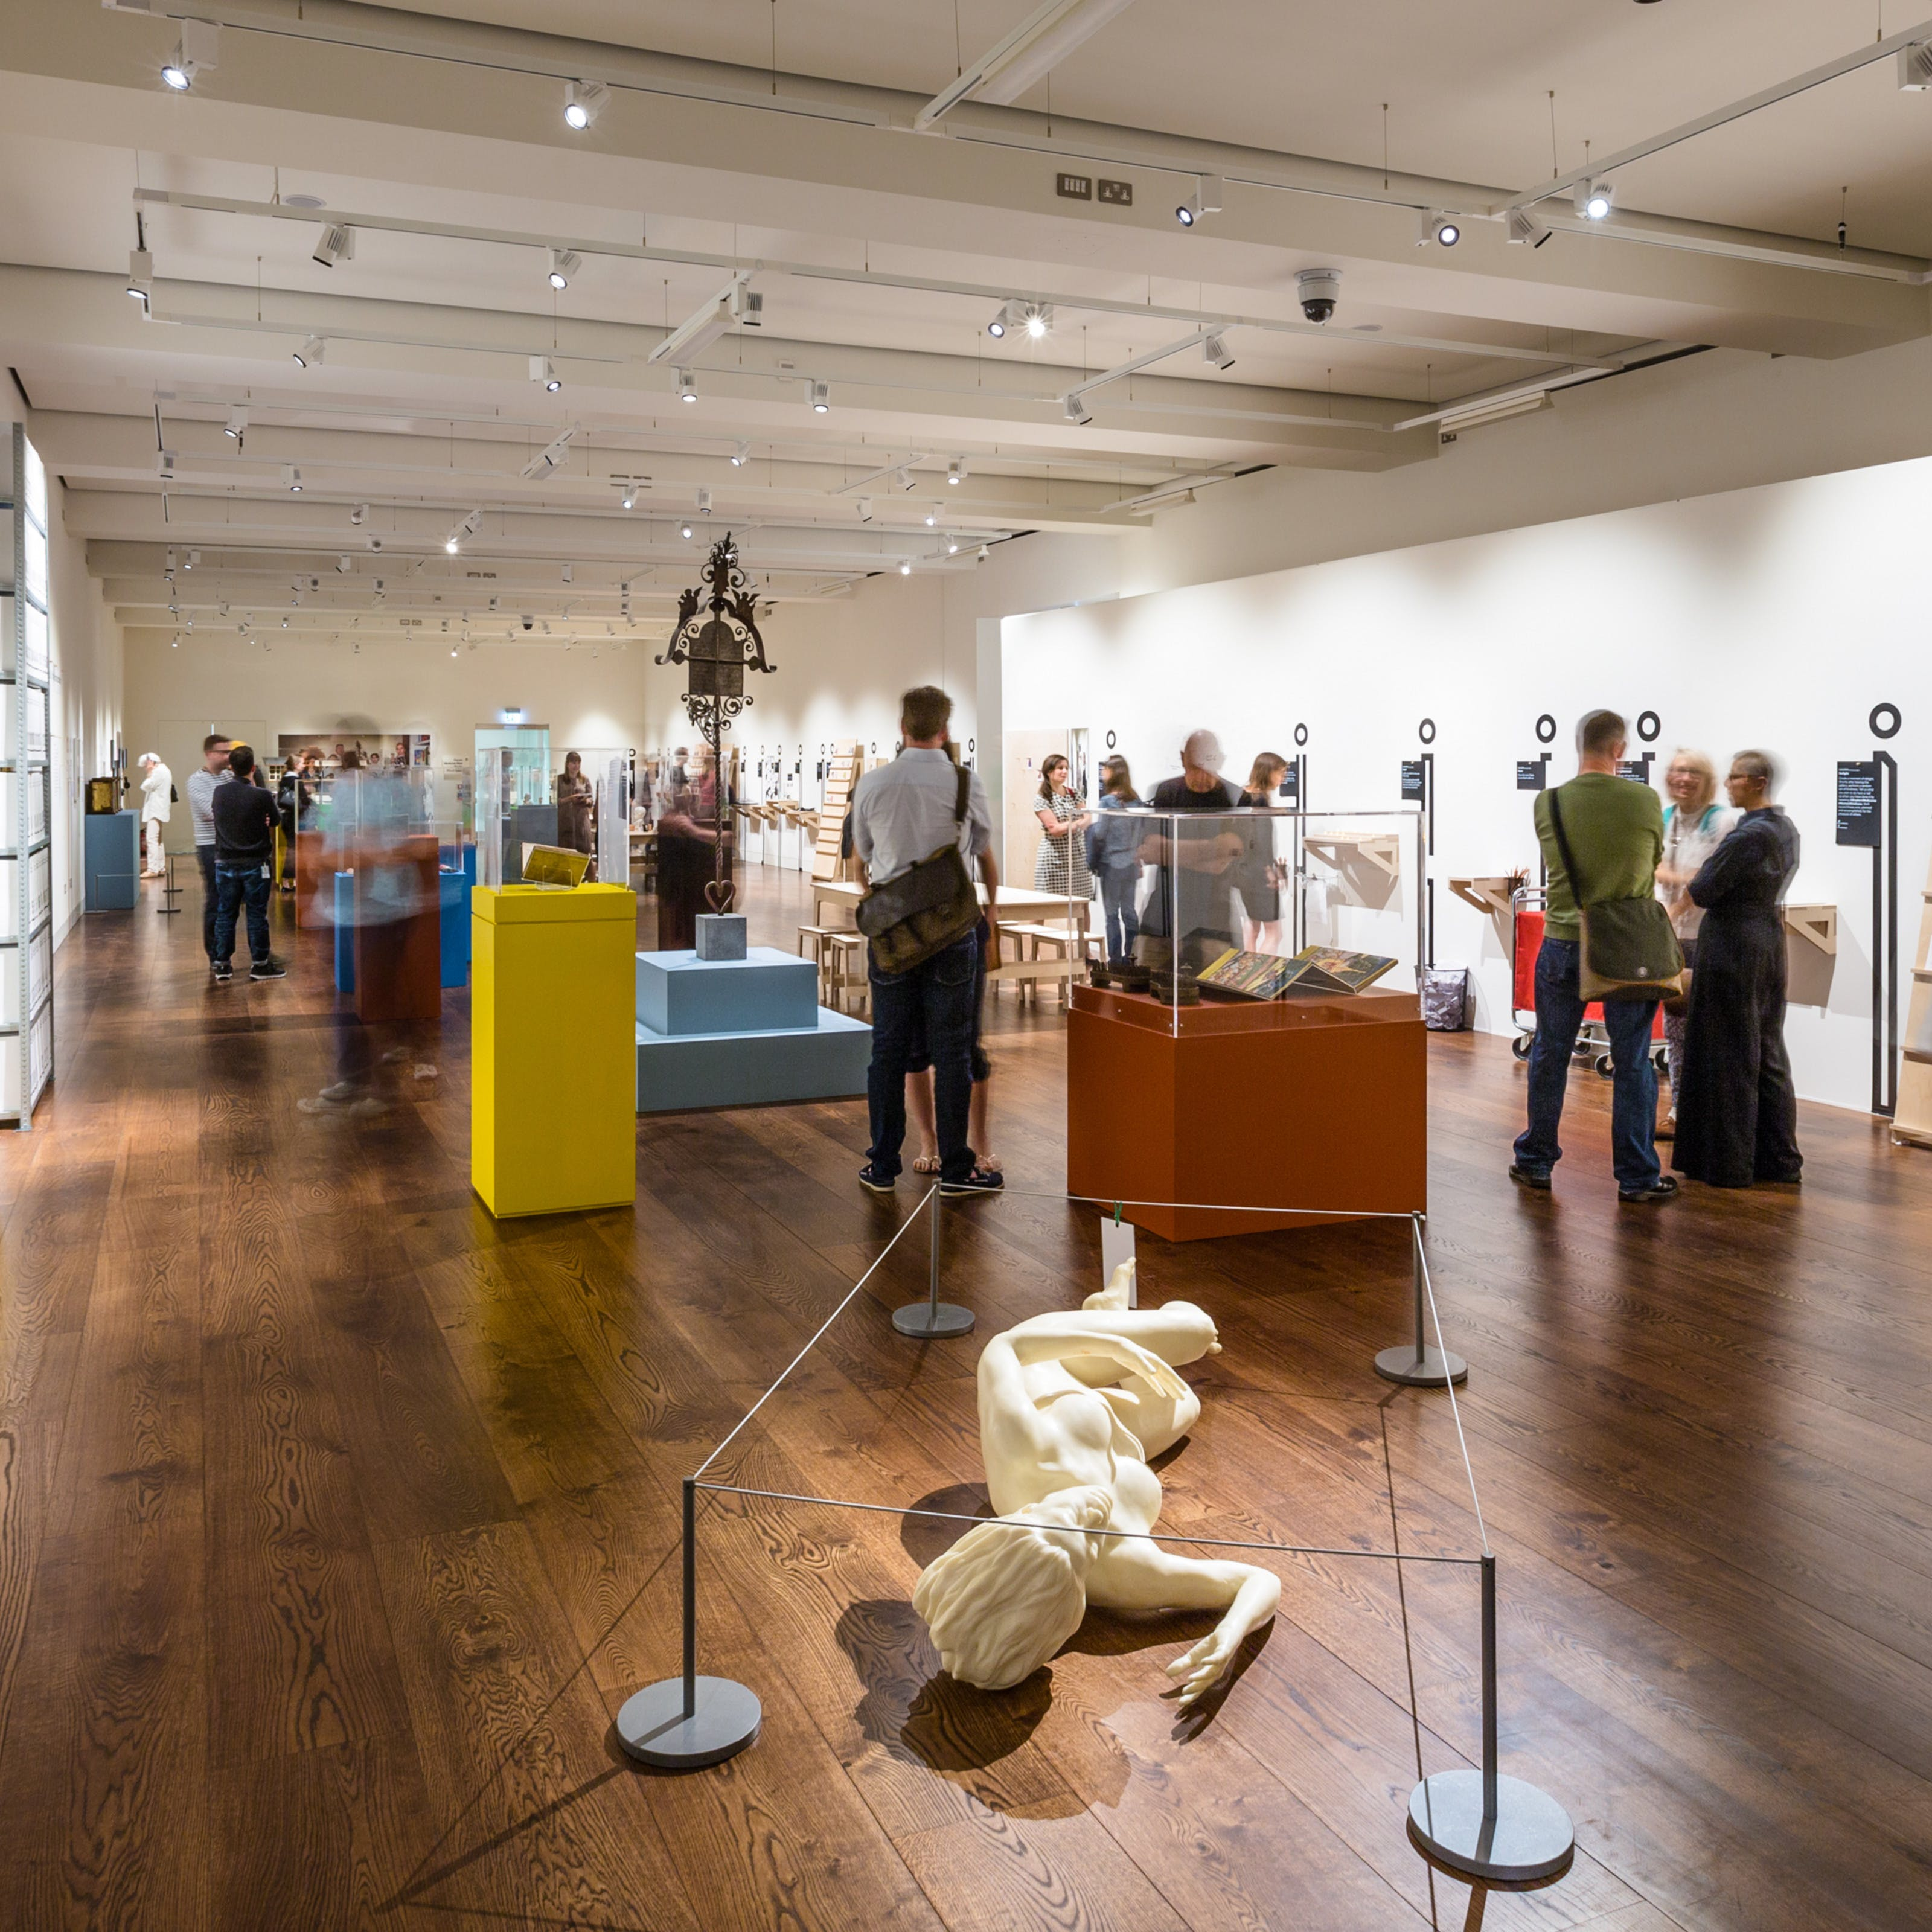 Photograph of the exhibition, An Idiosyncratic A to Z of the Human Condition, showing visitors exploring the space.